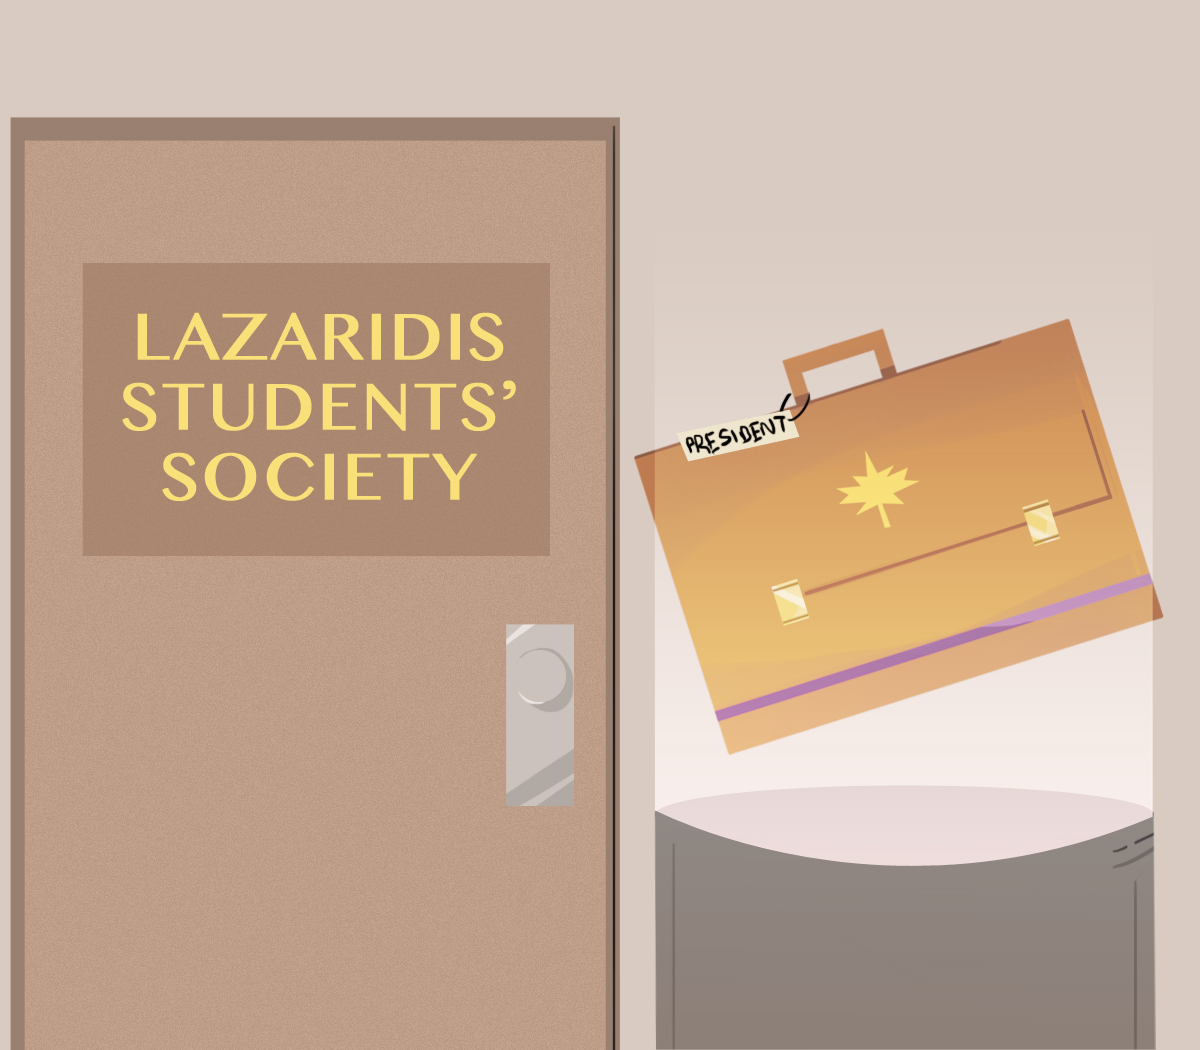 LazSoc to conduct hiring process